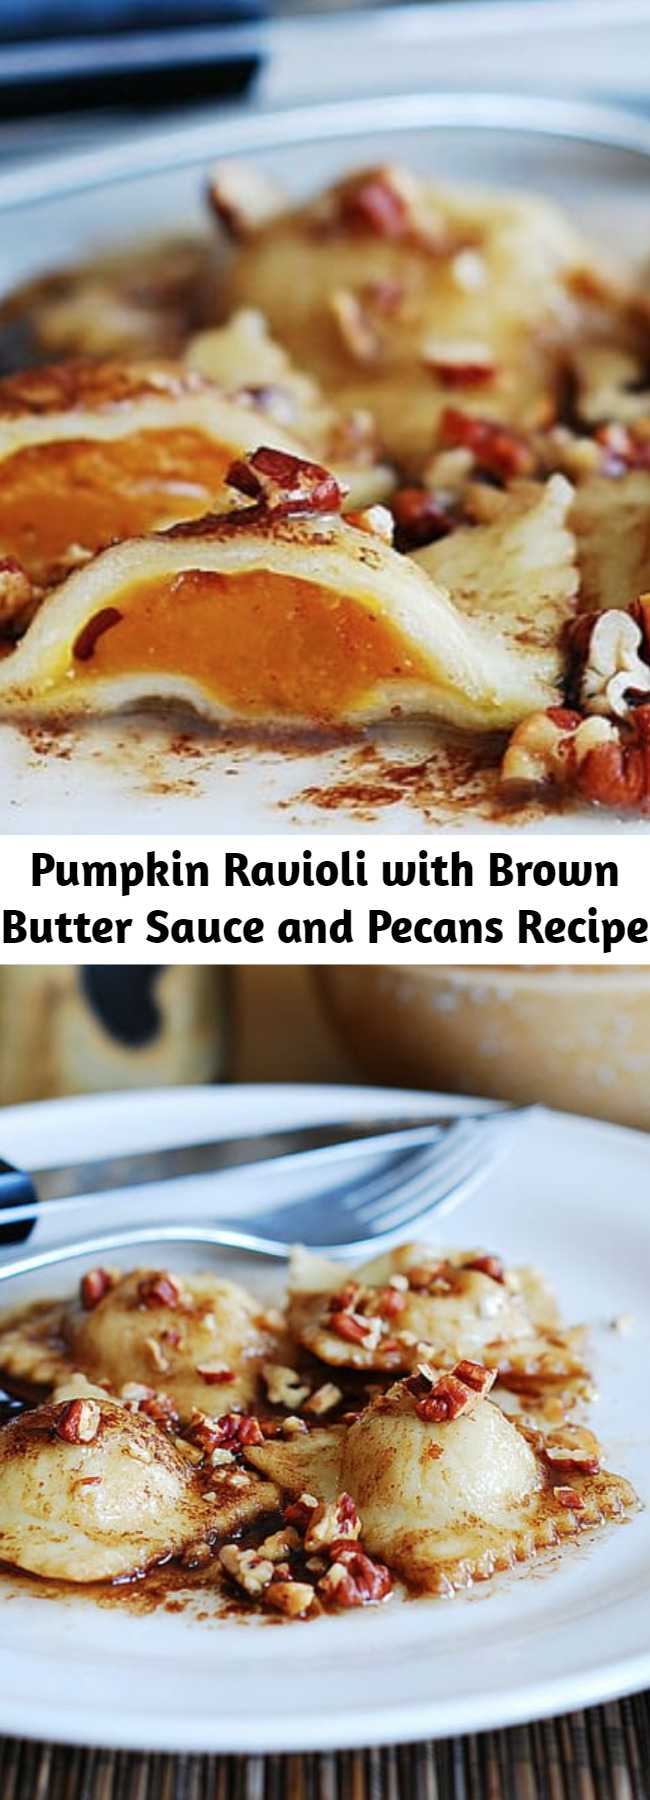 Pumpkin Ravioli with Brown Butter Sauce and Pecans Recipe - Pumpkin ravioli with brown butter sauce and pecans – everything is made from scratch! Great recipe during the holiday season (Thanksgiving and Christmas) with lots of seasonal ingredients: pumpkin, pecans, nutmeg.